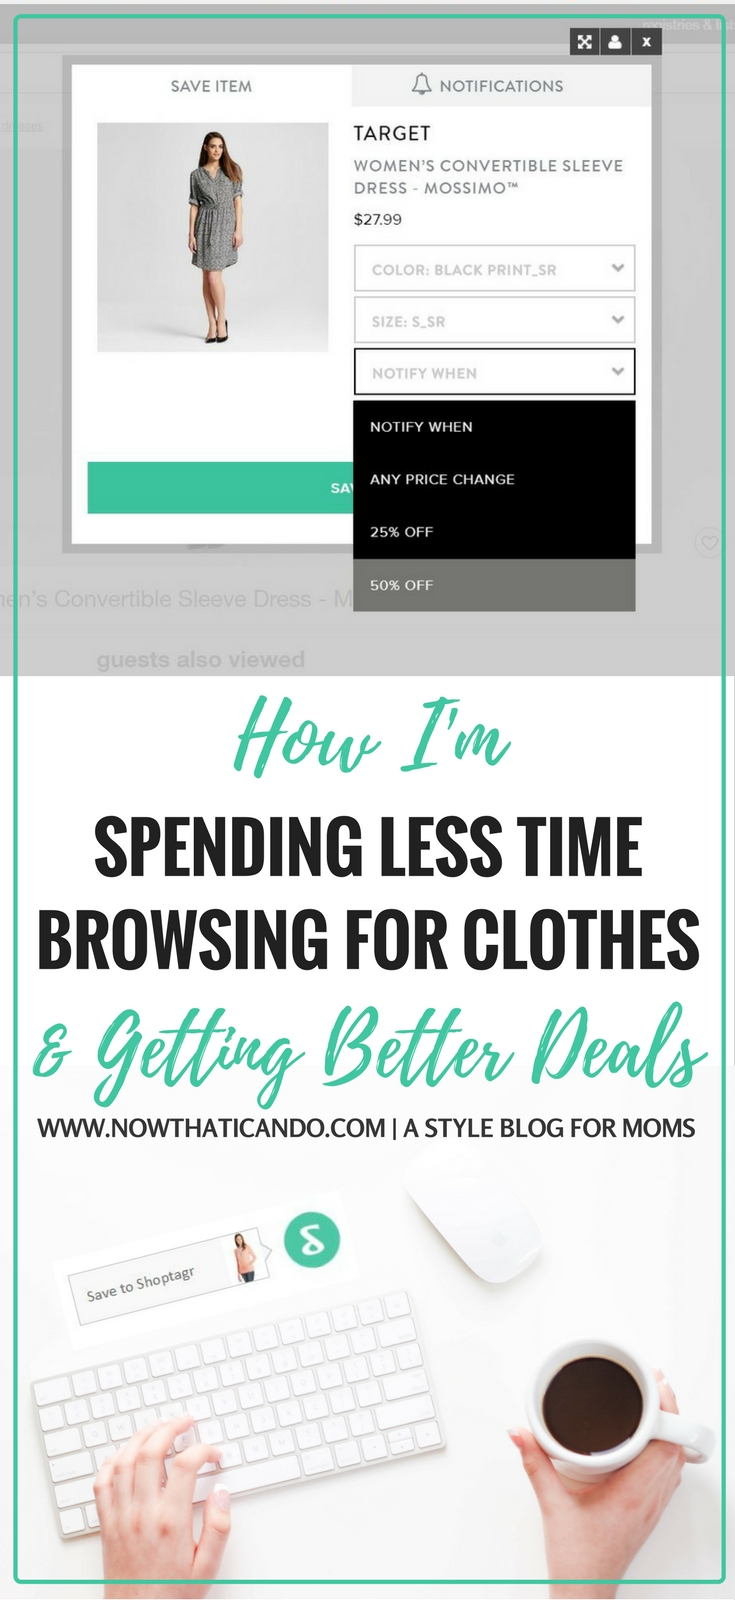 How to never pay full price for clothes you need! Shoptagr is such an awesome tool! I wish I knew about it sooner. Click through to learn more about it!